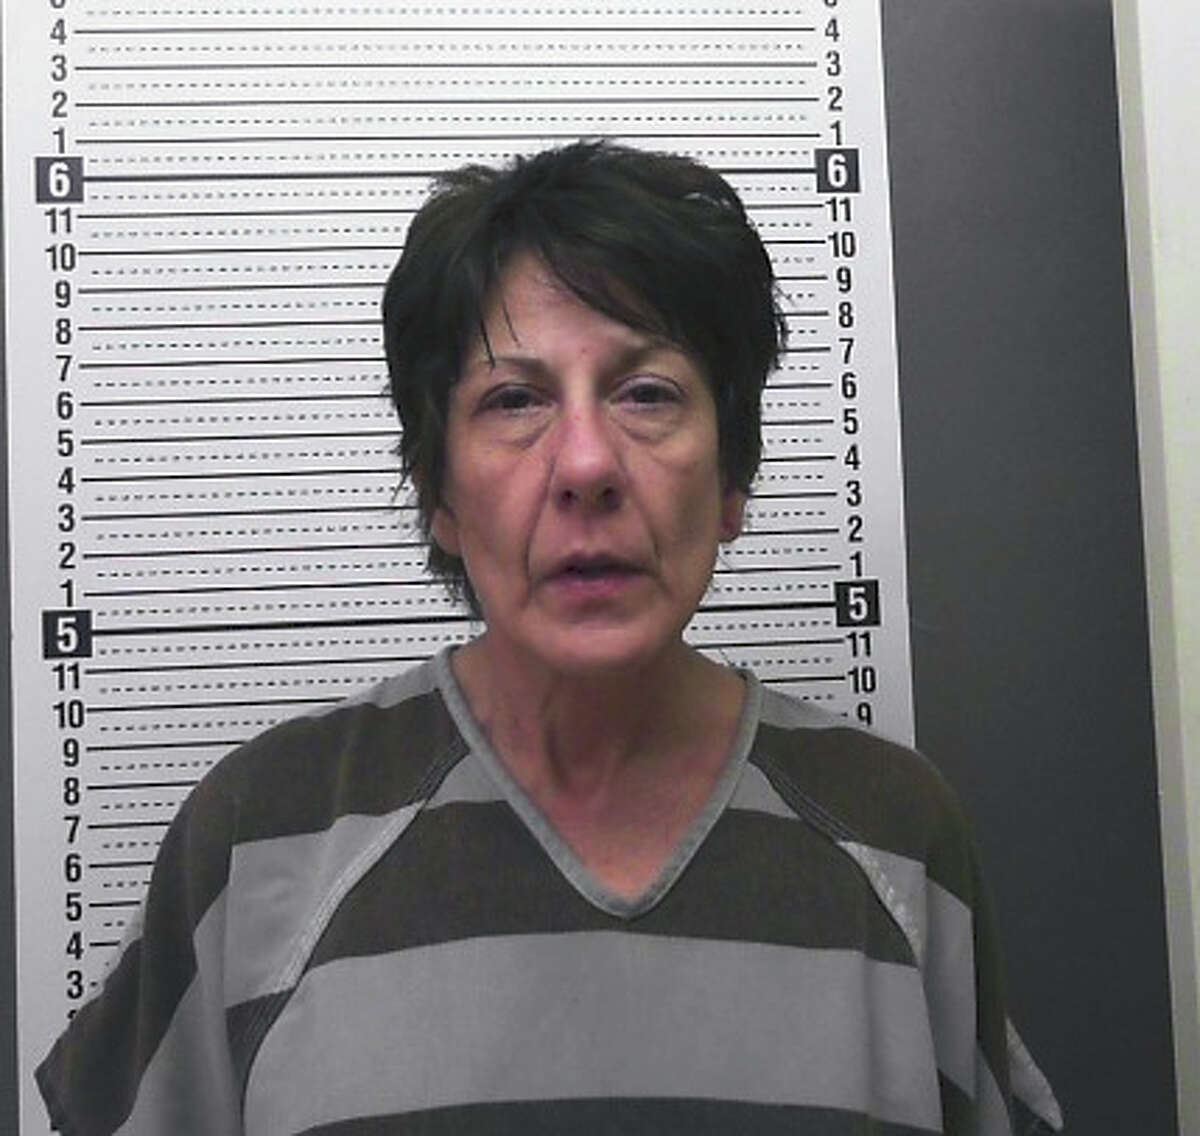 Deborah N. Arnold allegedly stole two vehicles according to the Boerne Police Department.